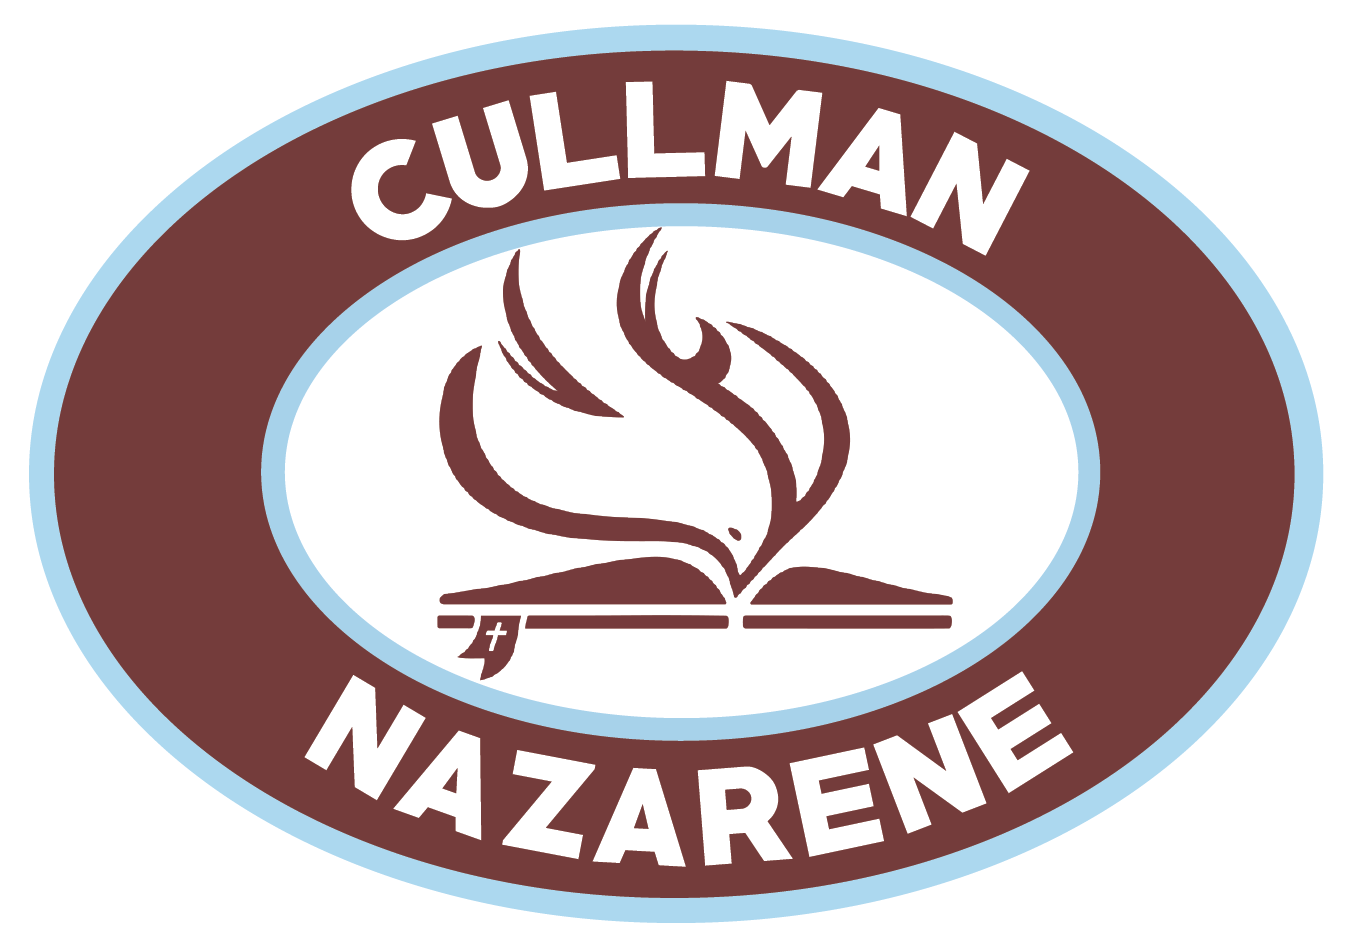 Cullman First Church Of The Nazarene